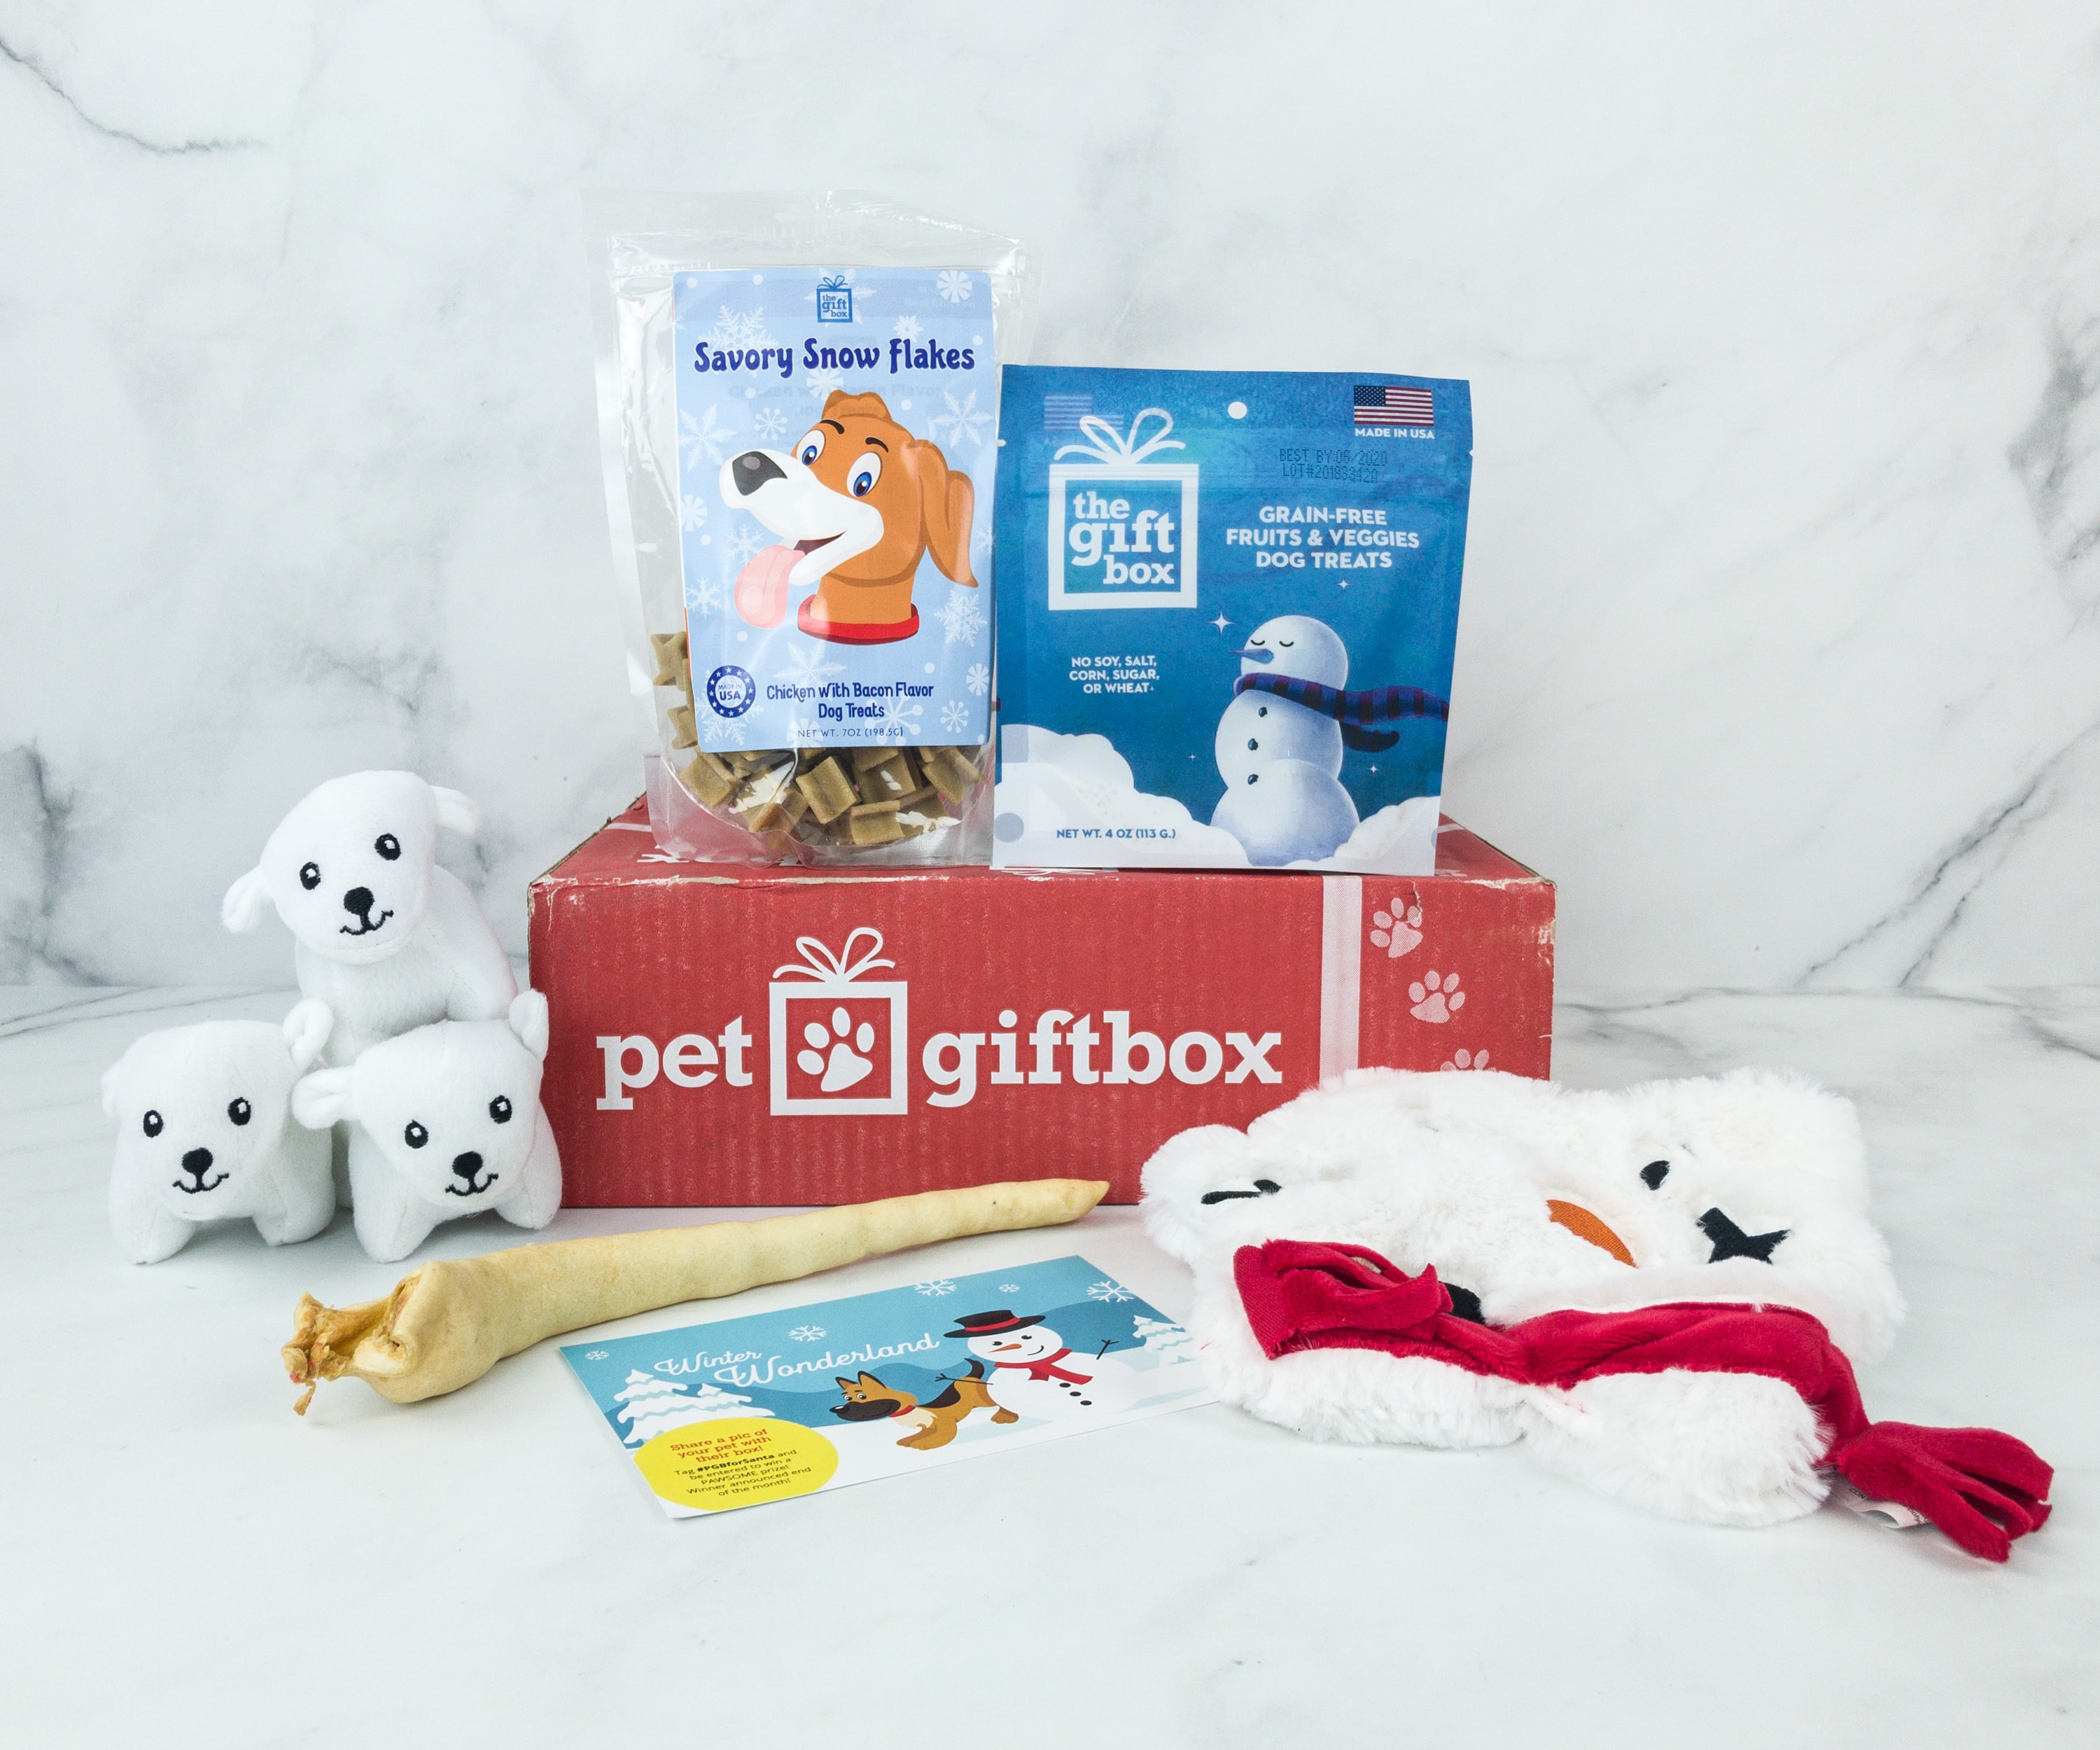 PetGiftBox December 2018 Subscription Box Review + 50% Off Coupon